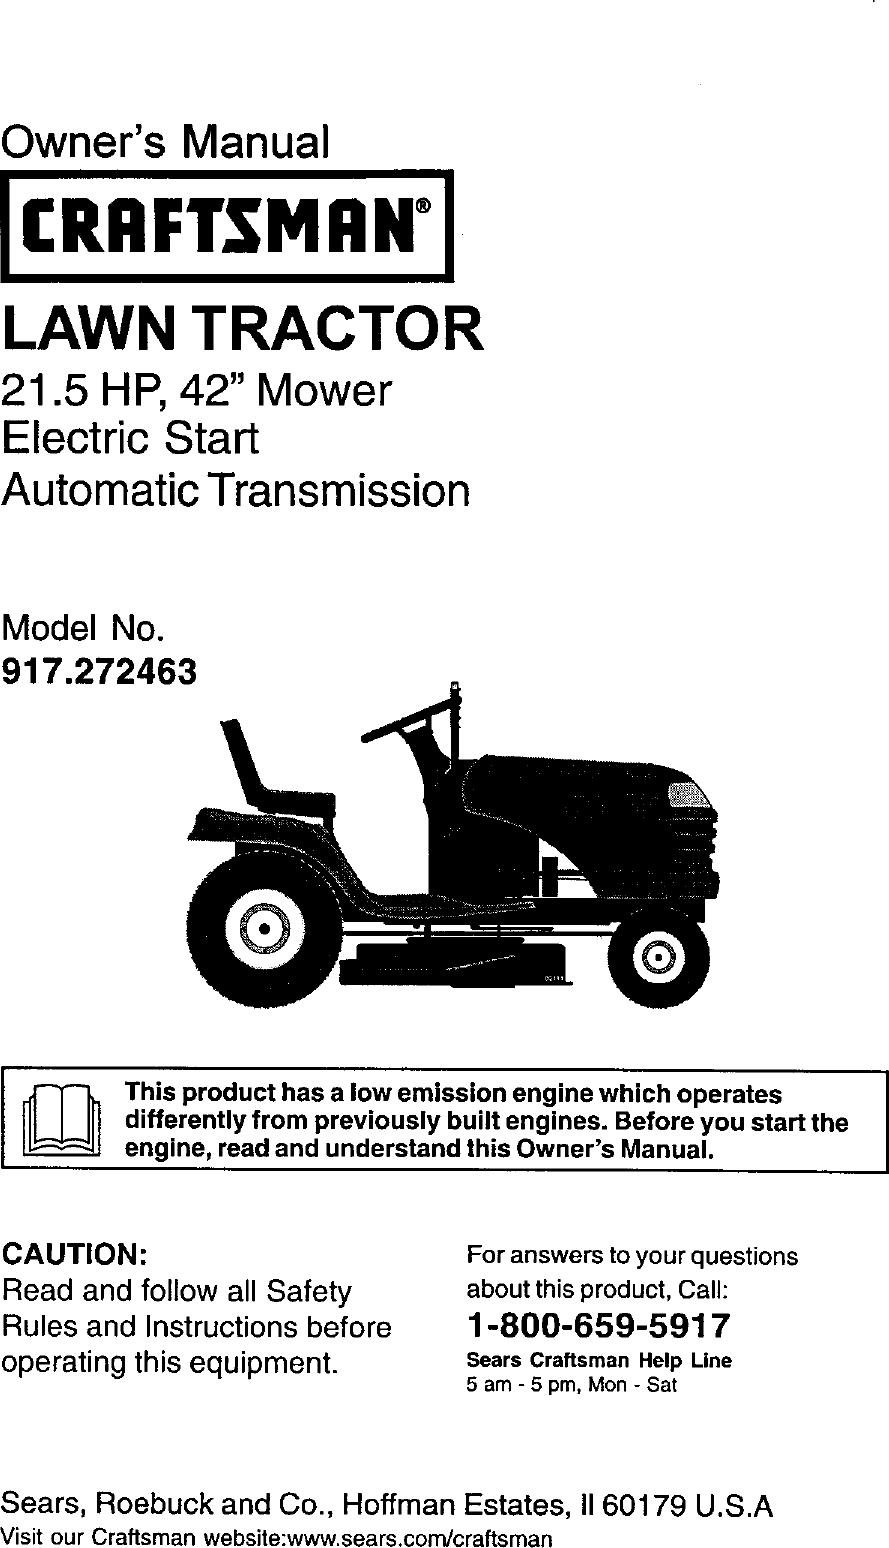 manual for craftsman lawn tractor model 917.272463